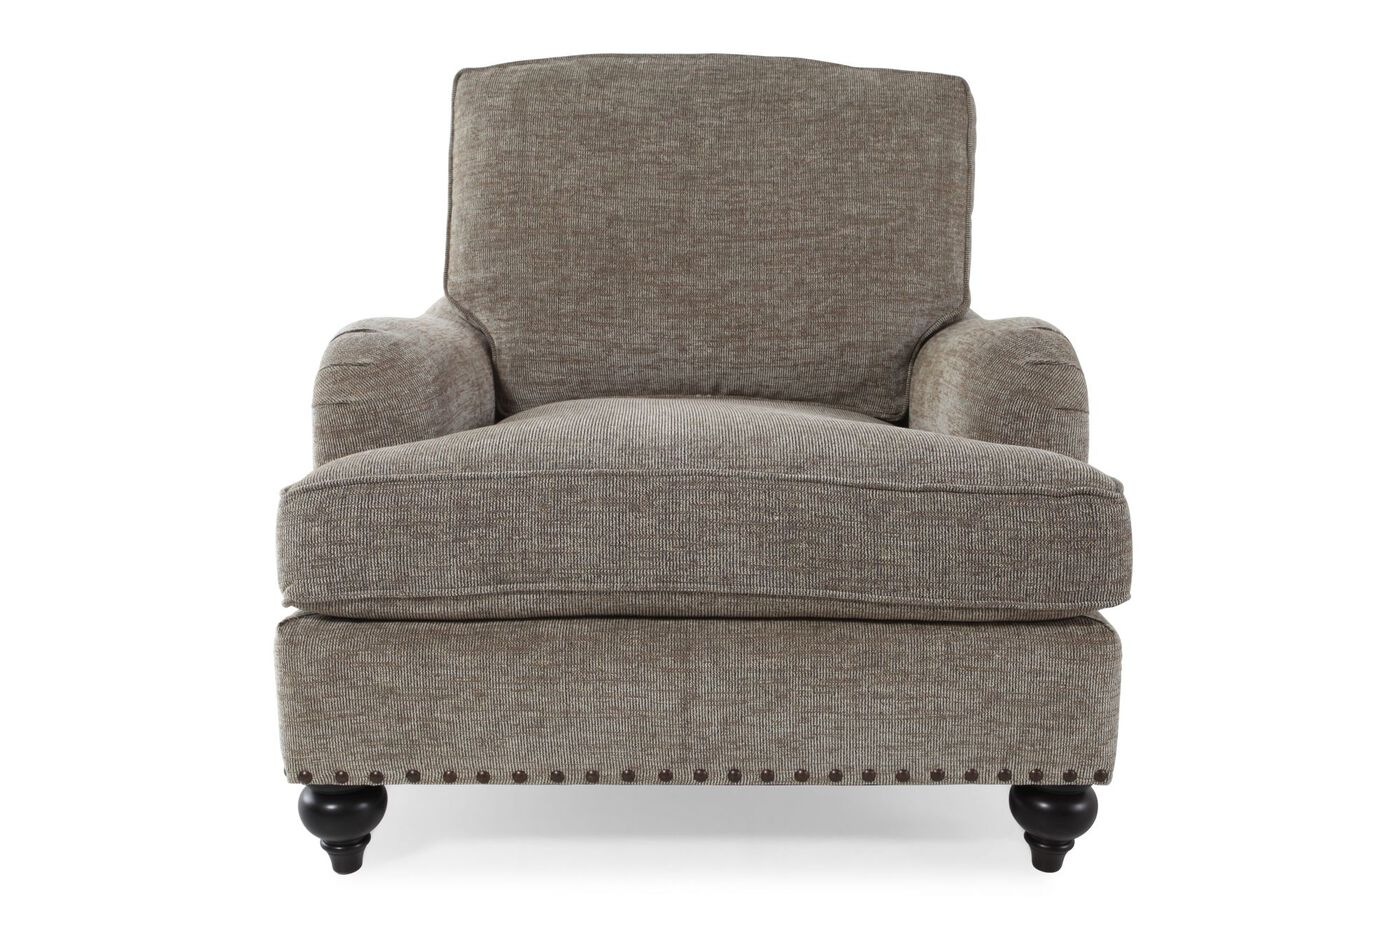 Textured cottage 38 chair in sandstone mathis brothers for Where to buy bernhardt furniture online